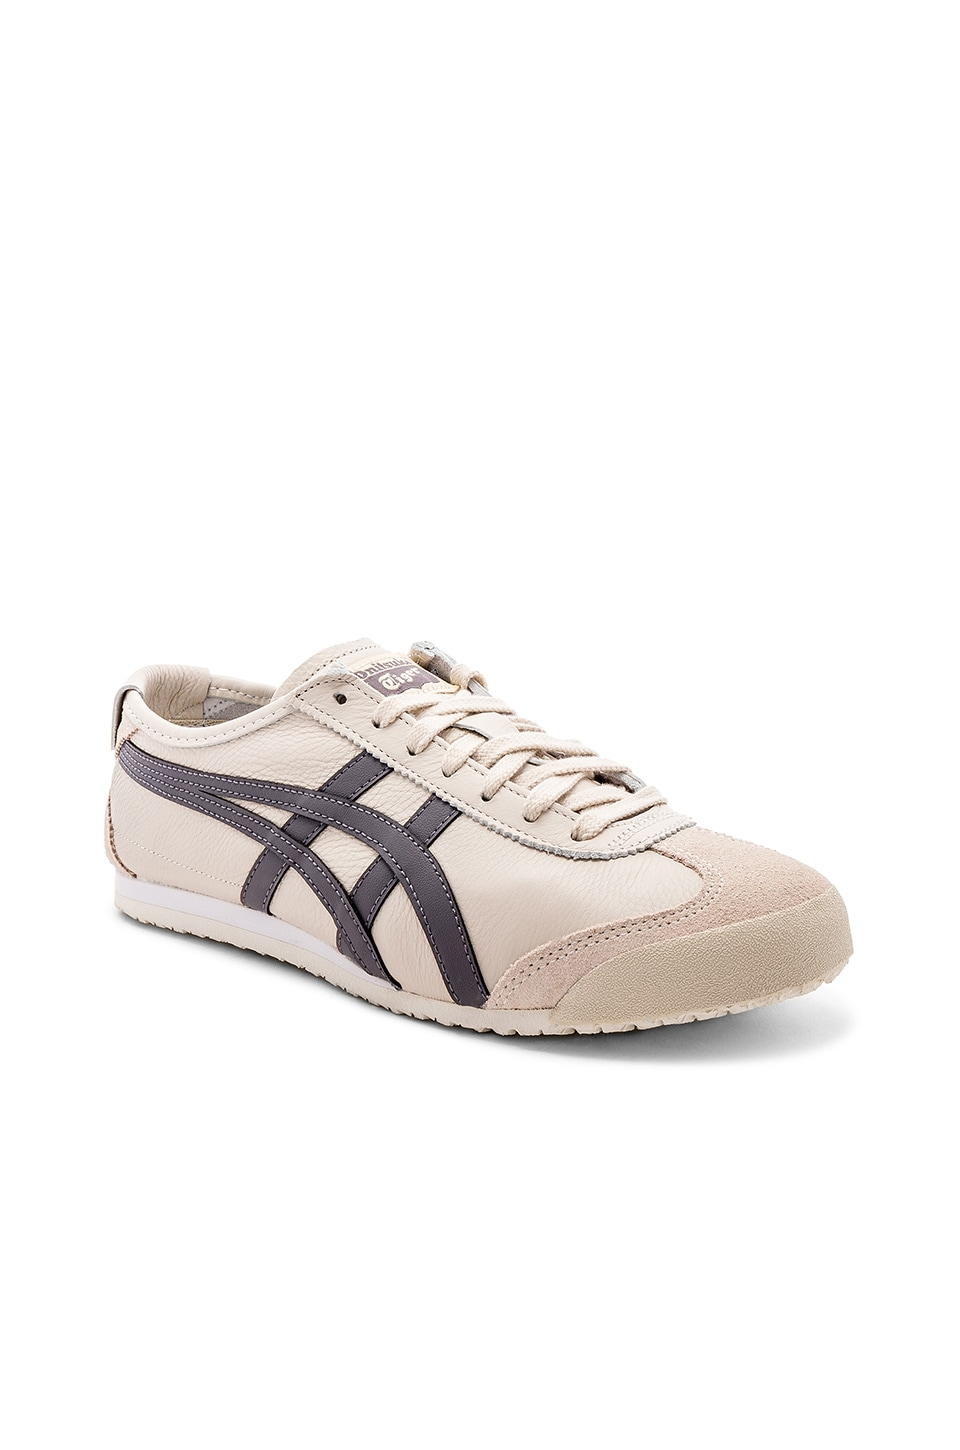 onitsuka tiger mexico 66 shoes online offers ksa youtube